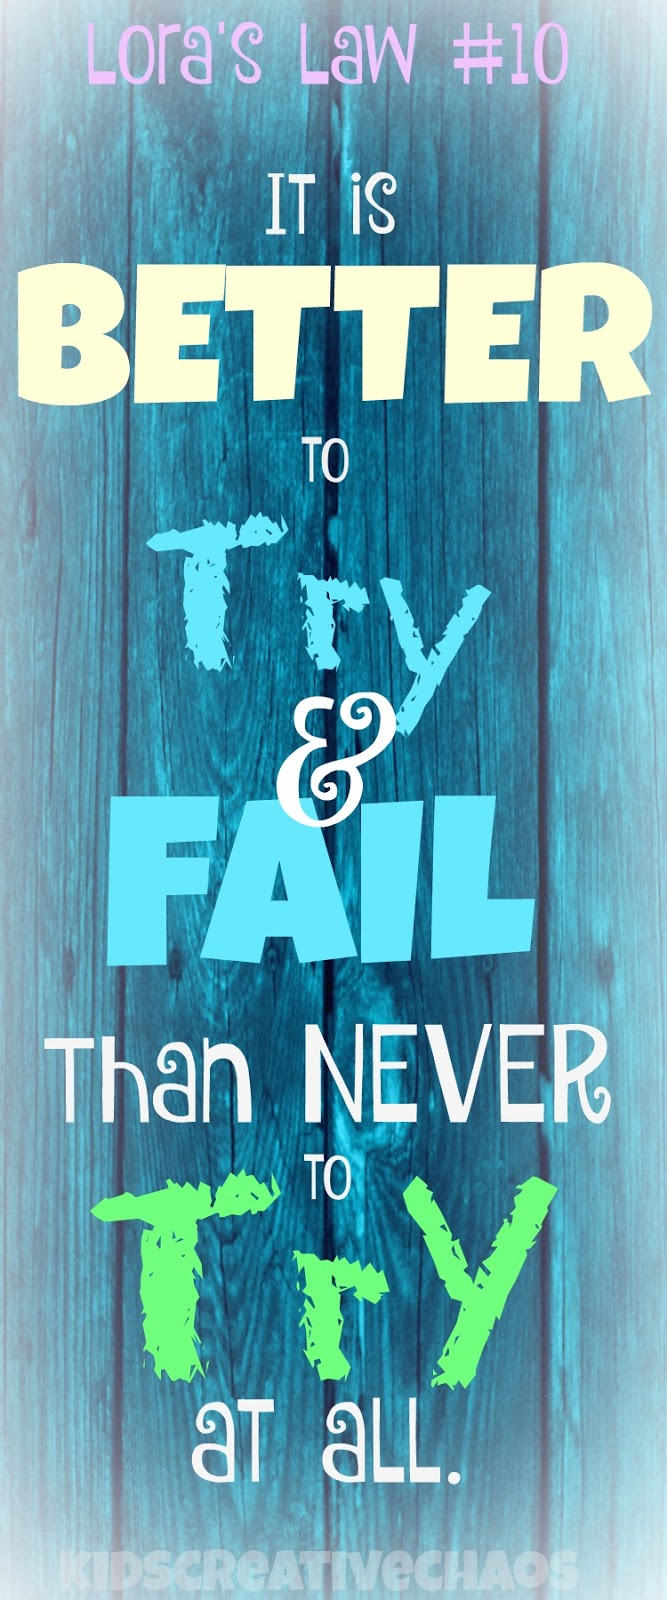 It is Better to Try and Fail Than Never to Try at all quote: Lora's Law #10